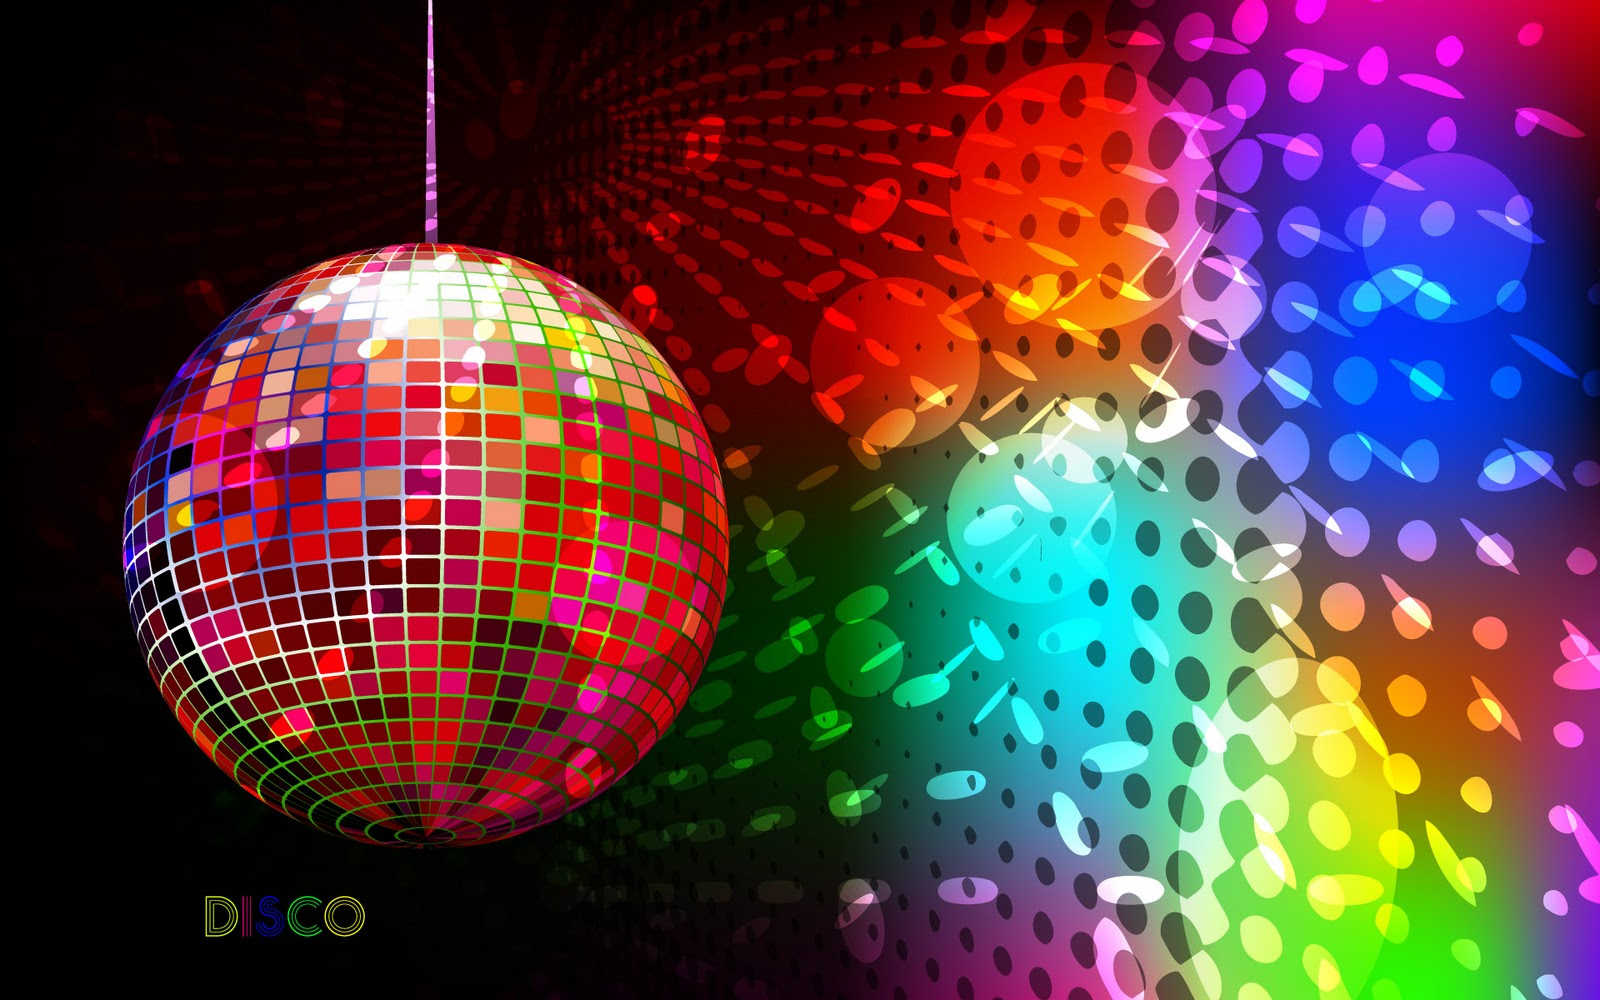 http://1.bp.blogspot.com/-AEx314_Fvac/T_y-WaixxWI/AAAAAAAAFgY/3OIcJloD-1c/s1600/colorful-disco-wallpaper-music-wallpaper.jpg